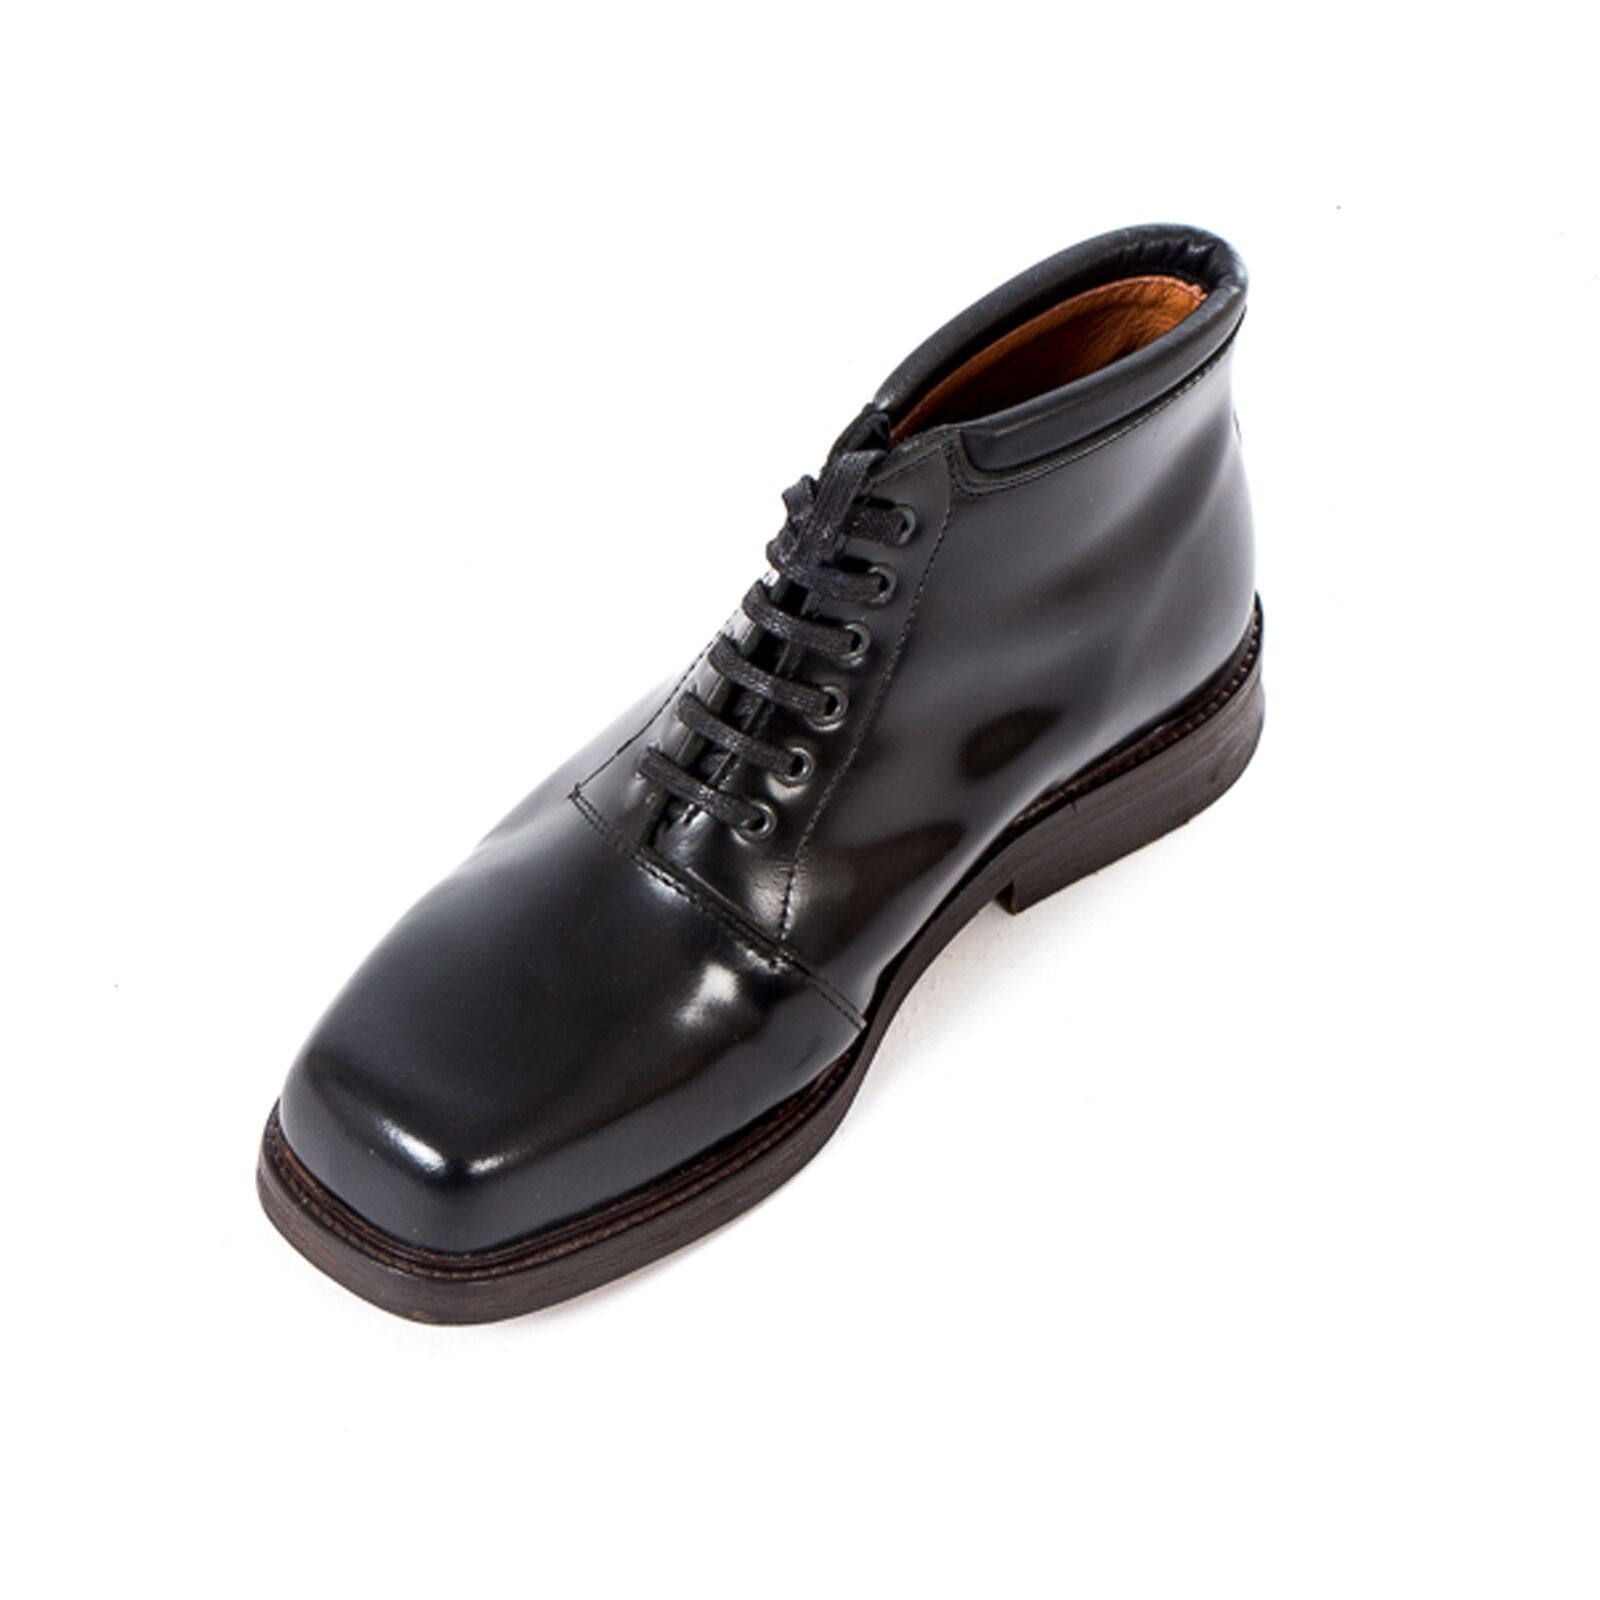 Boots & 4-Loch Braces - Oxford Black 4-Loch & Schuh Ledersohle Business Leder Made in EU faf9fd